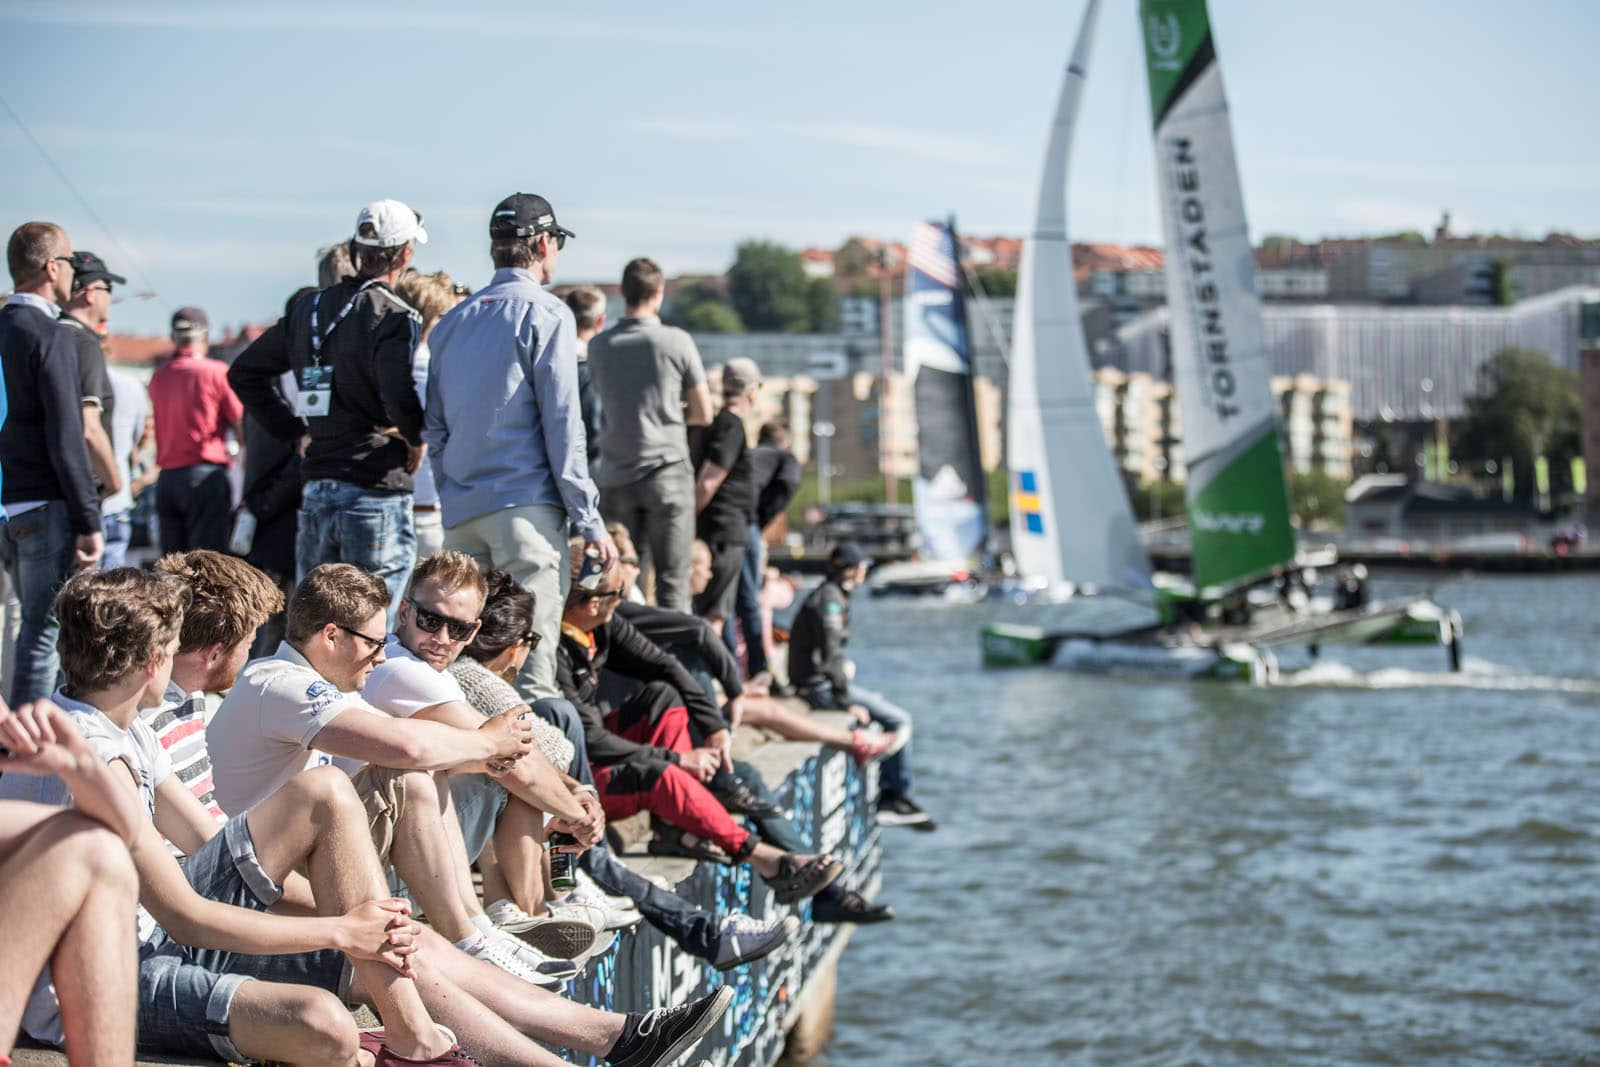 M32_Series-Gothenburg_Day2-8784